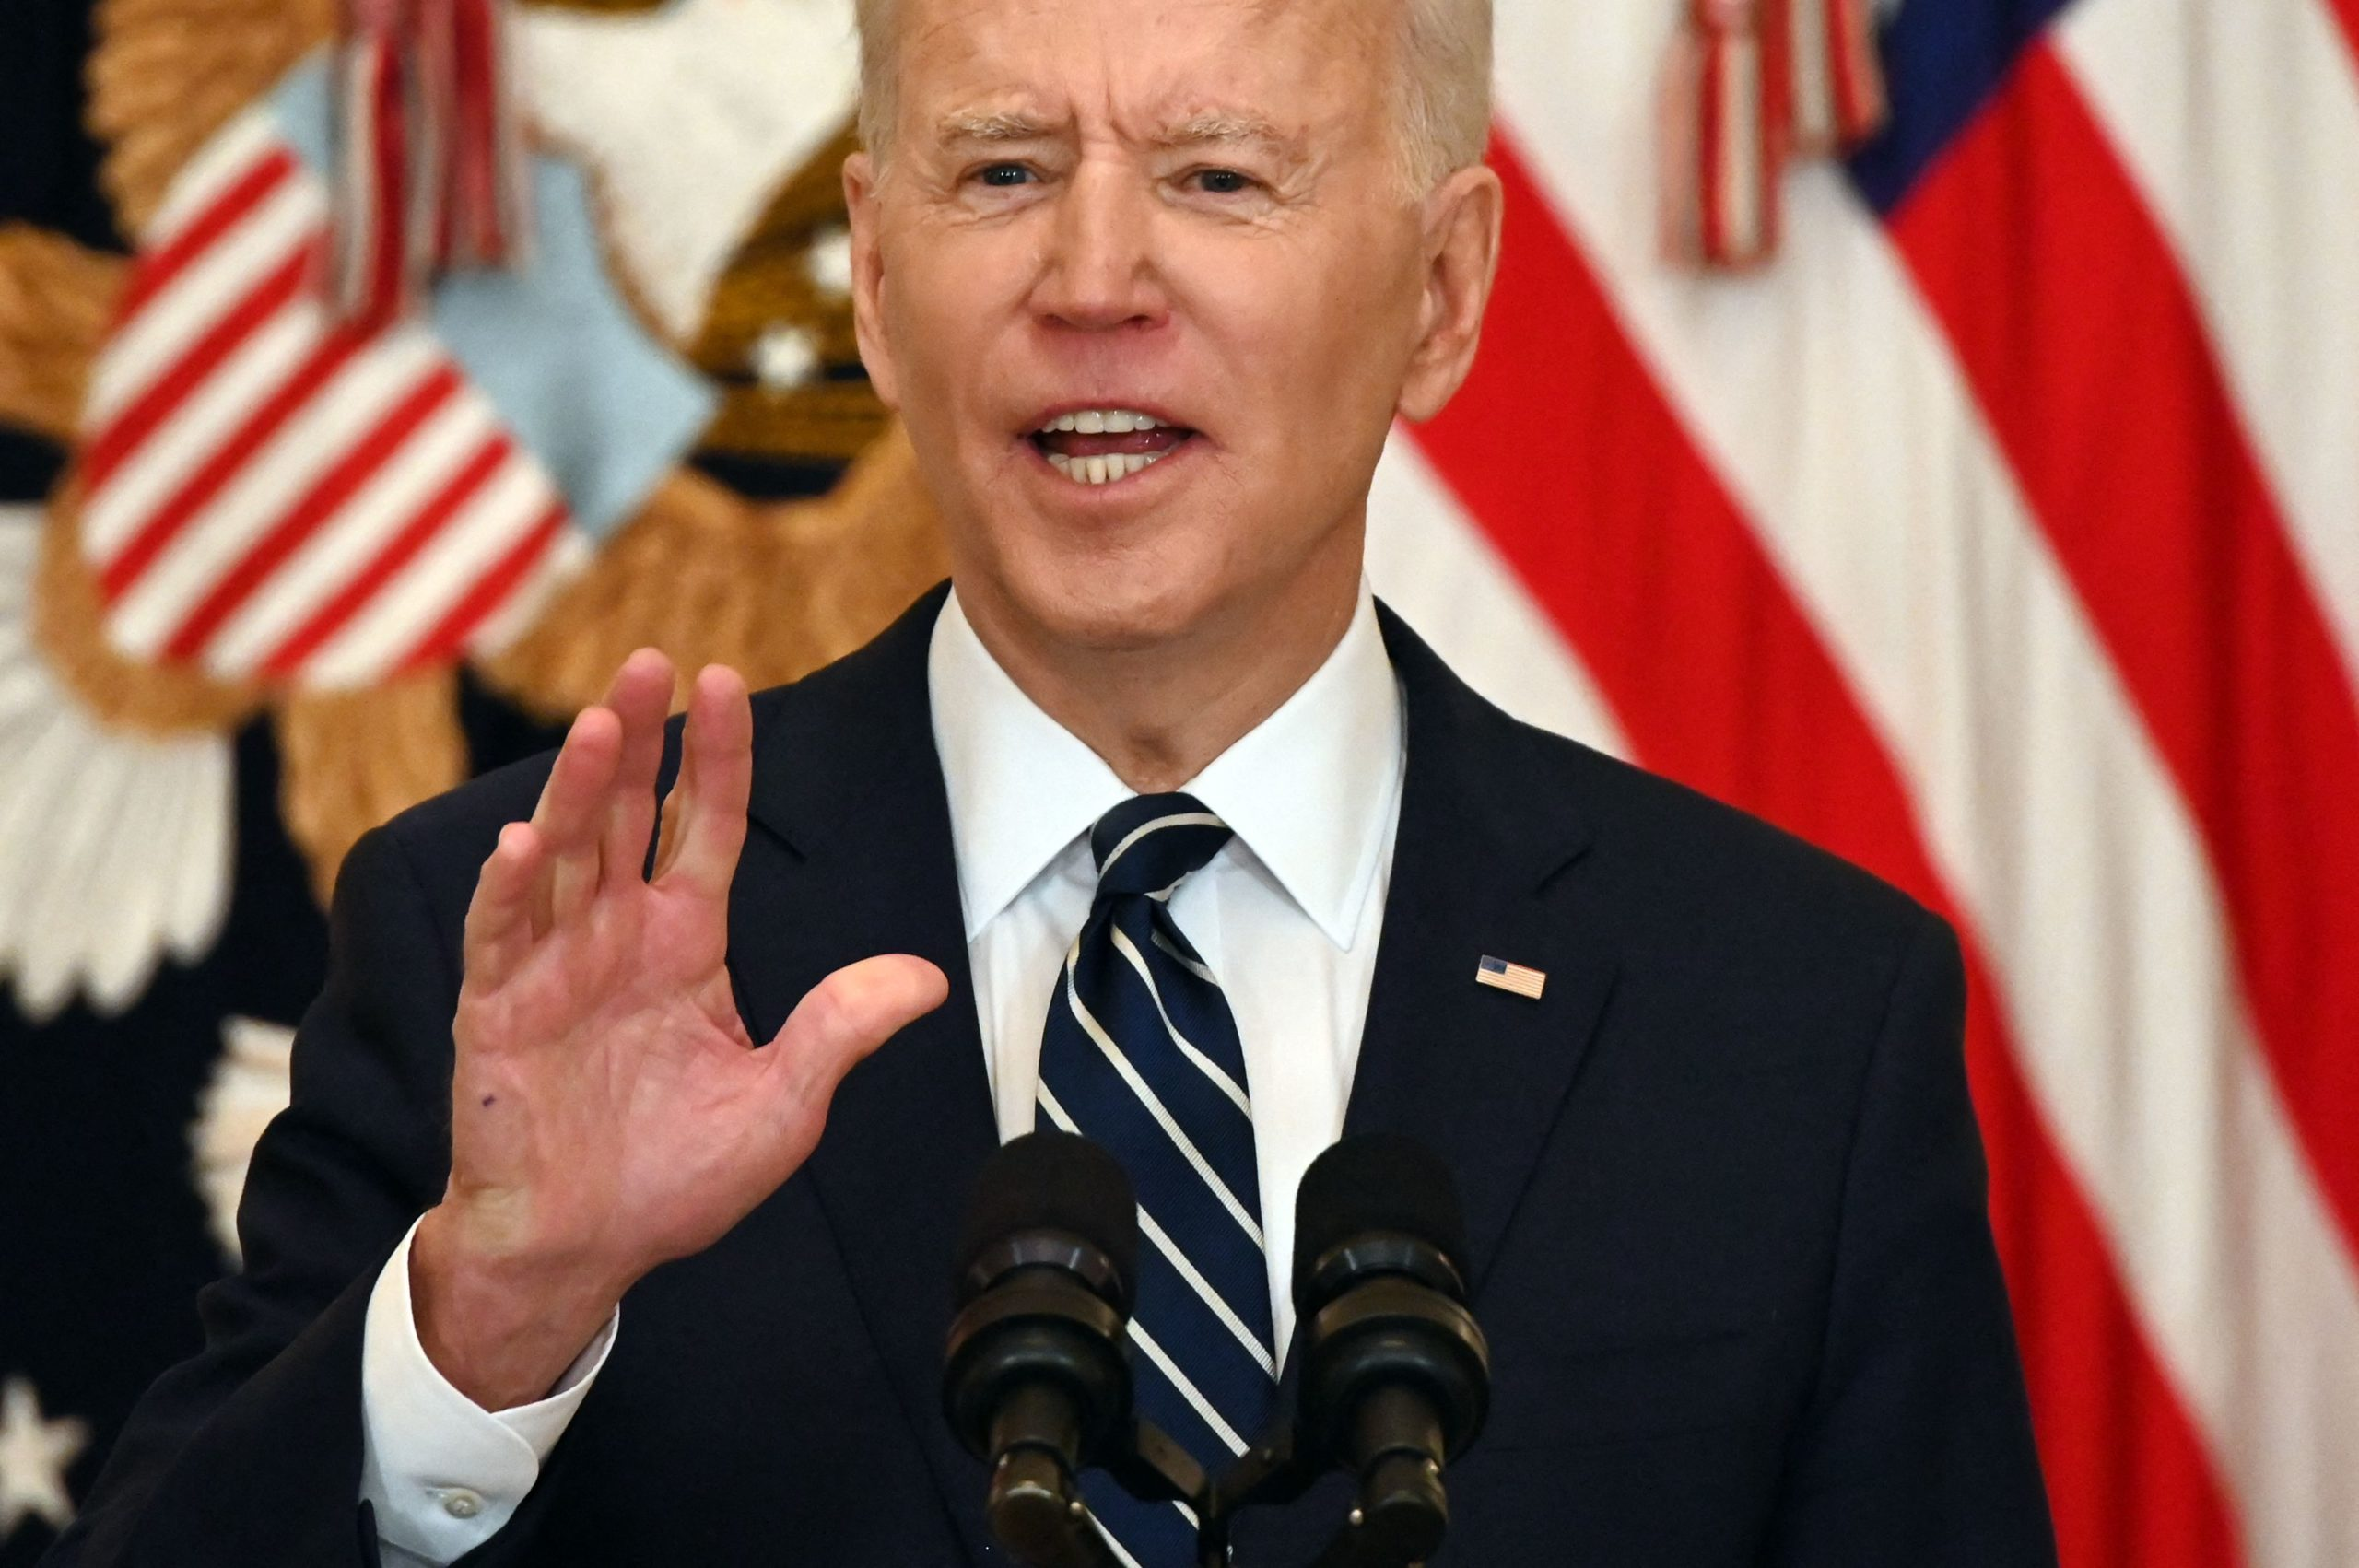 """US President Joe Biden answers a question during his first press briefing in the East Room of the White House in Washington, DC, on March 25, 2021. - Biden said Thursday that the United States will """"respond accordingly"""" if North Korea escalates its missile testing. (Photo by JIM WATSON/AFP via Getty Images)"""